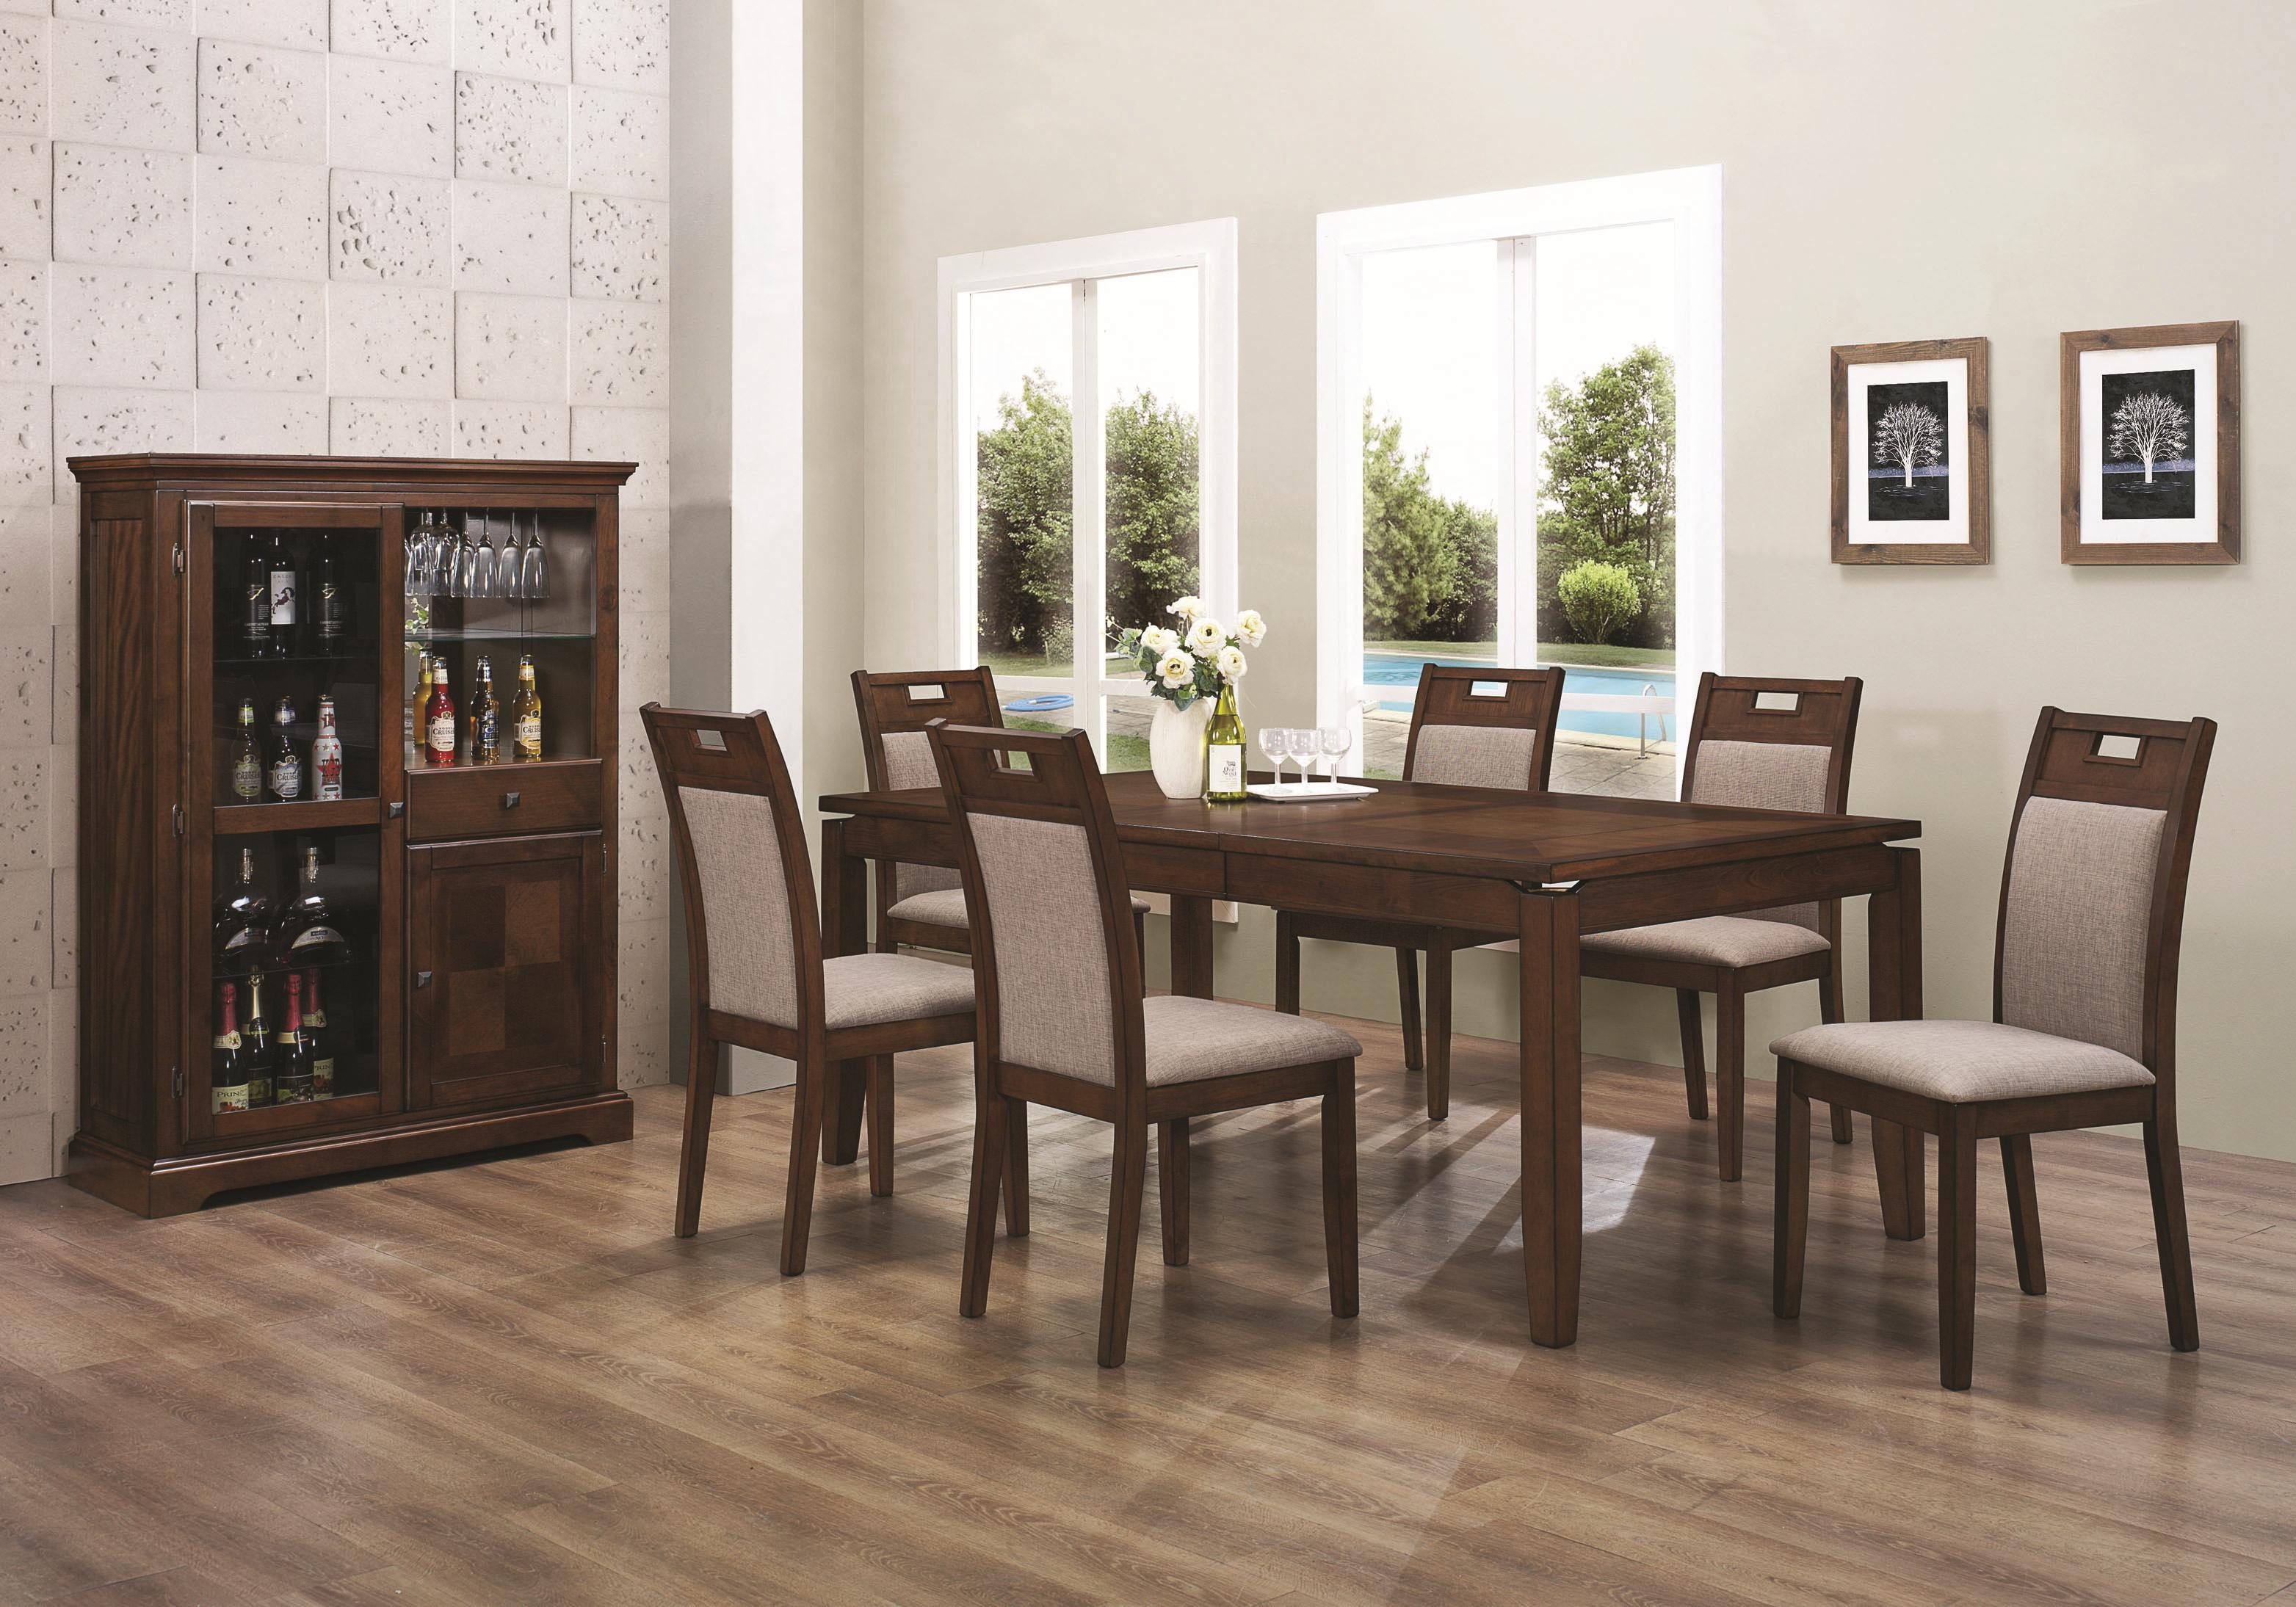 Dining room chairs to complete dining room chairs to for Complete dining room sets